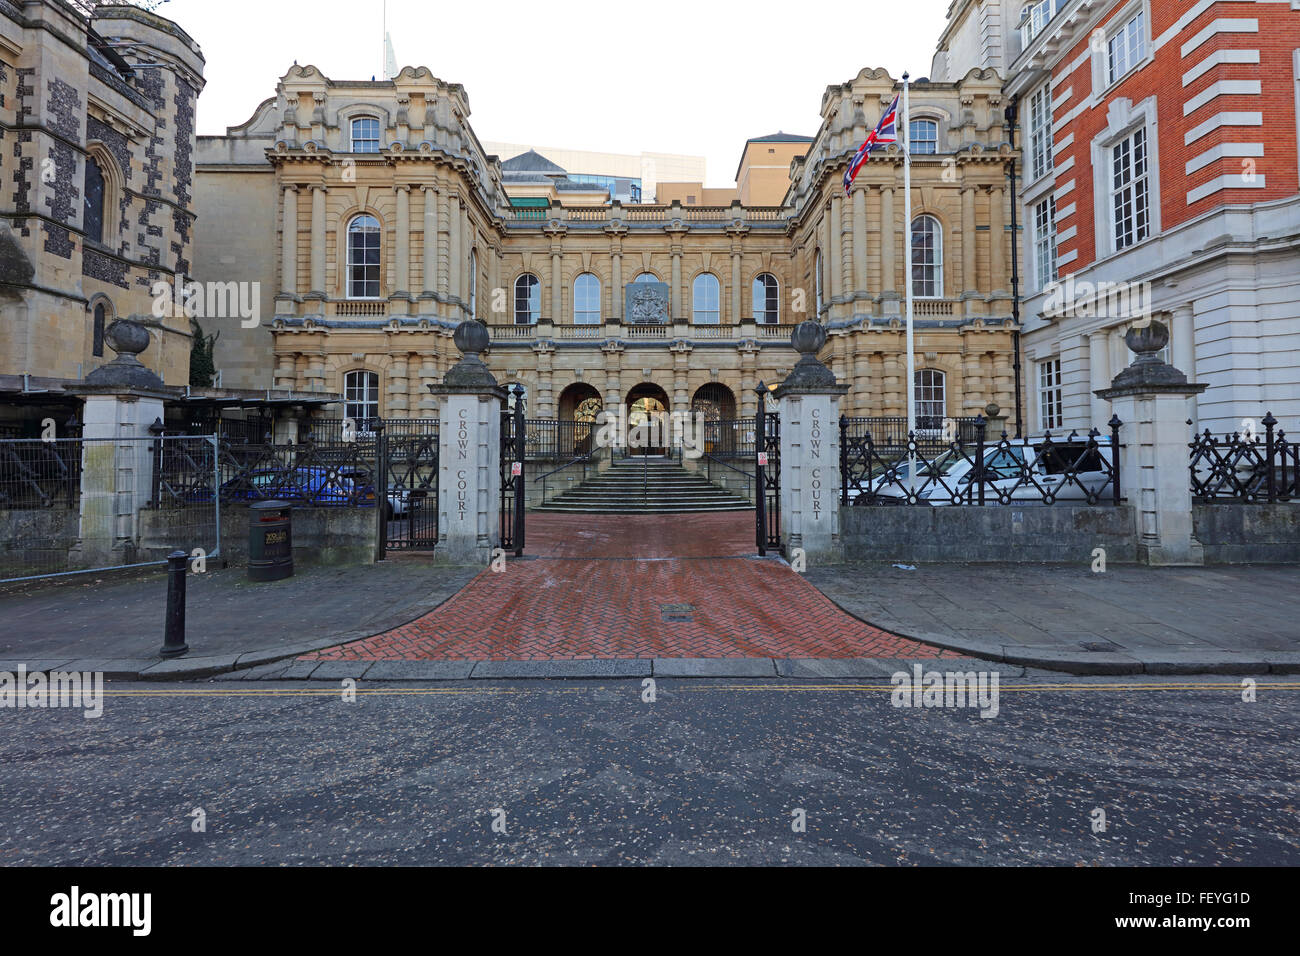 The old Crown court building in the Forbury gardens area with its gated entrance and old bath stone building. - Stock Image